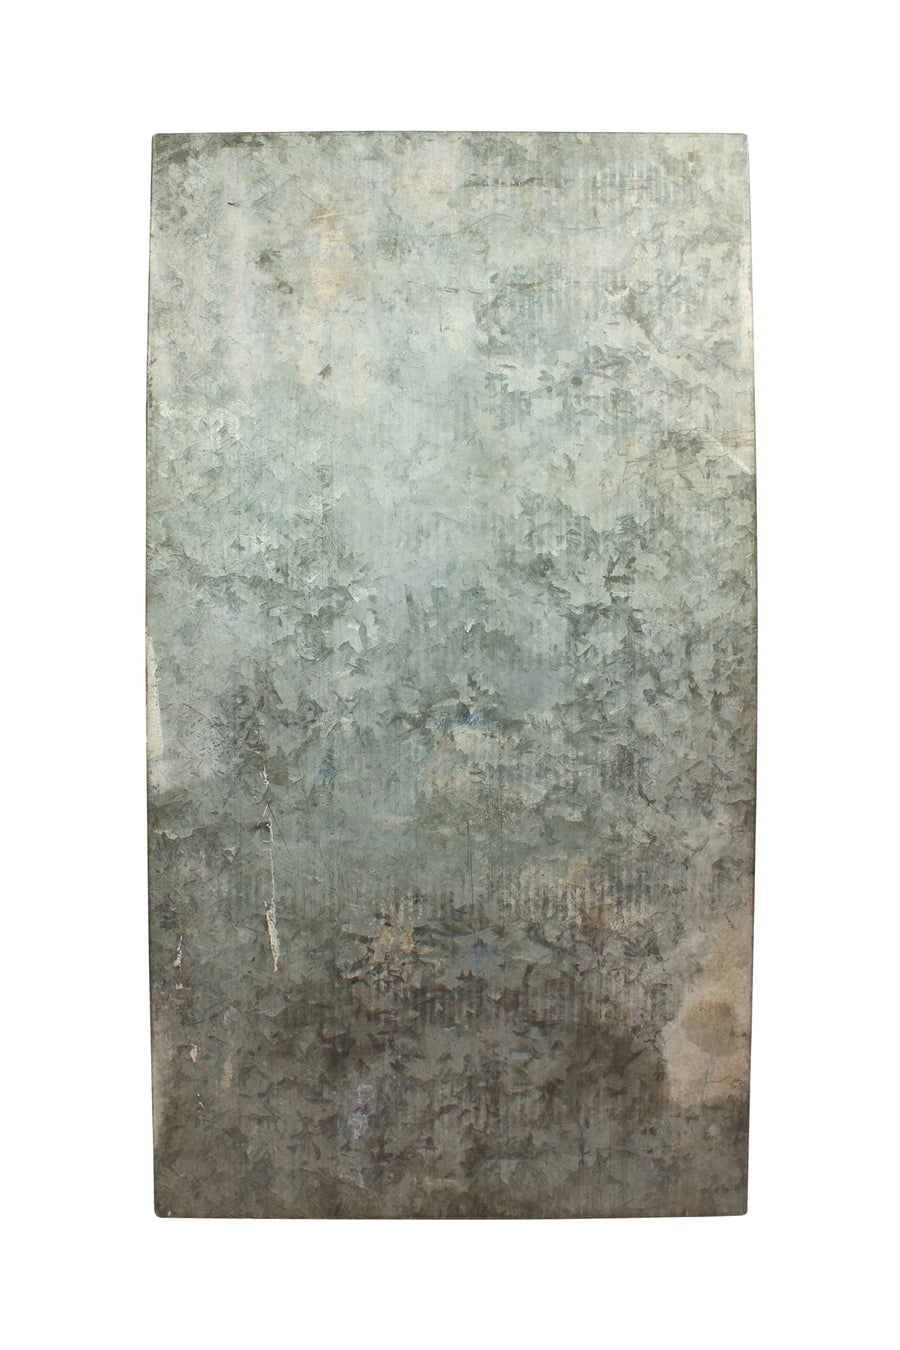 Galvanized Tin Surface